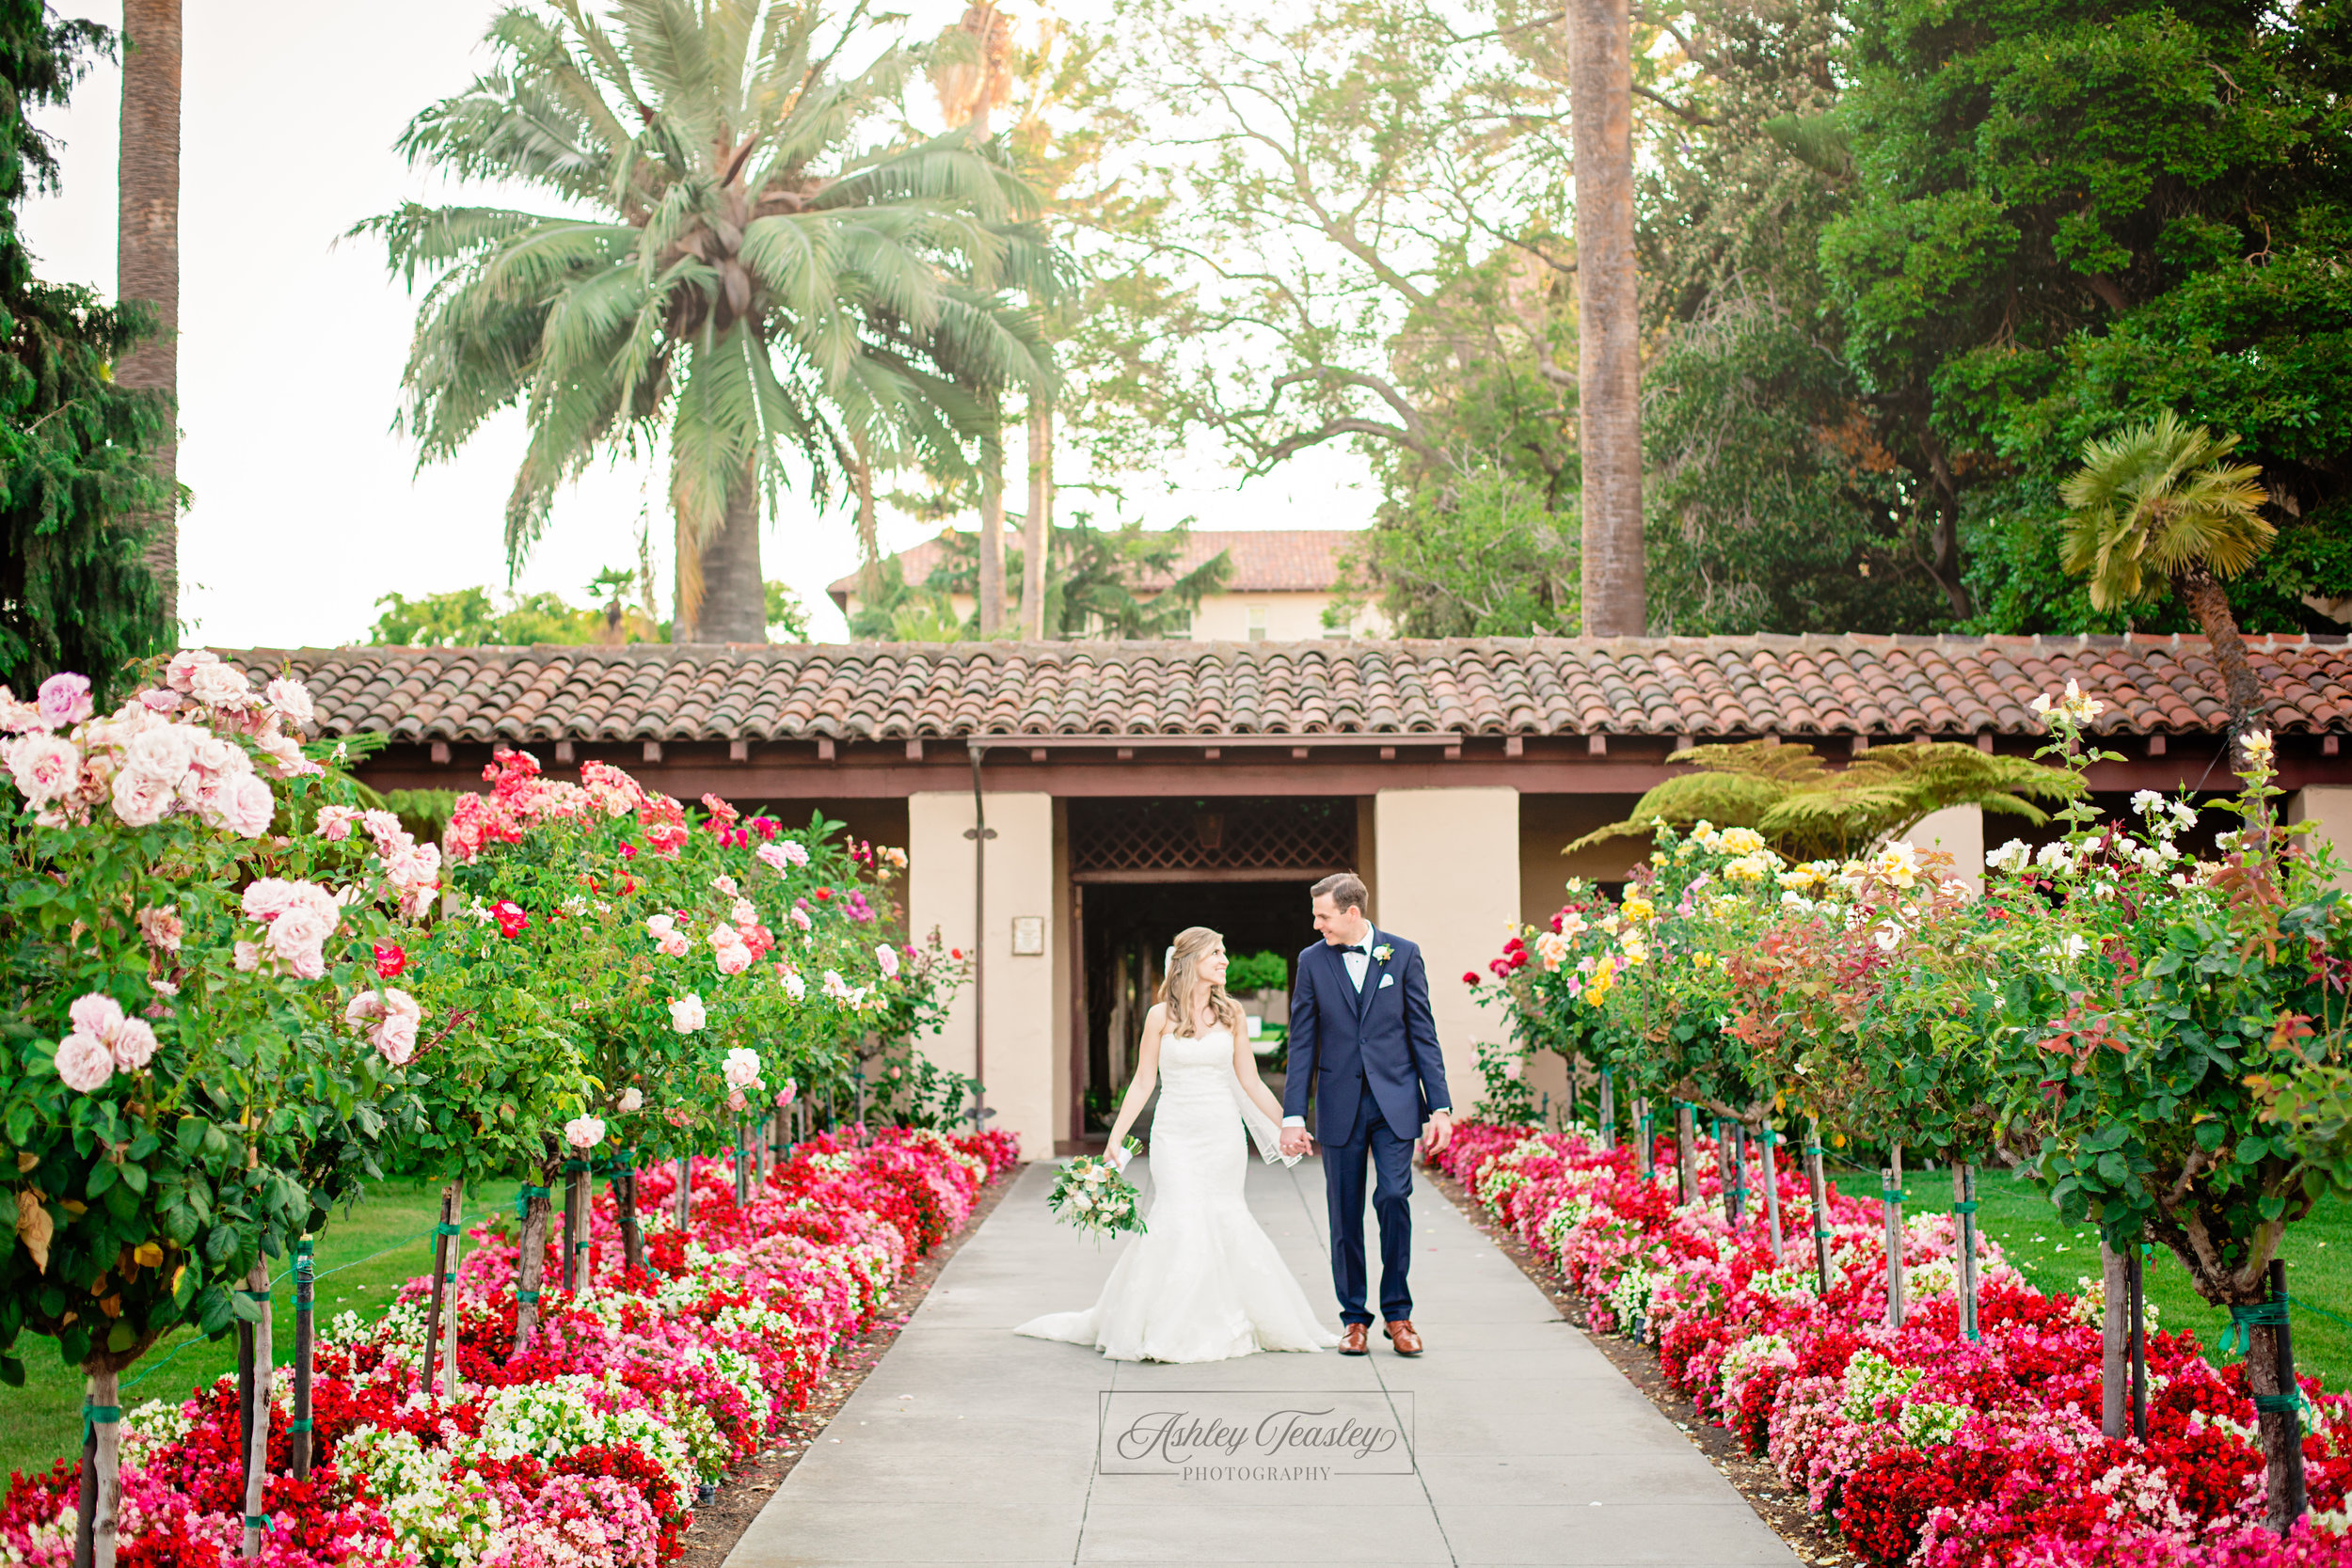 Jenny & David - The Adobe Lodge - Santa Clara University - Sacramento Wedding Photographer - Ashley Teasley Photography (1 of 2).jpg